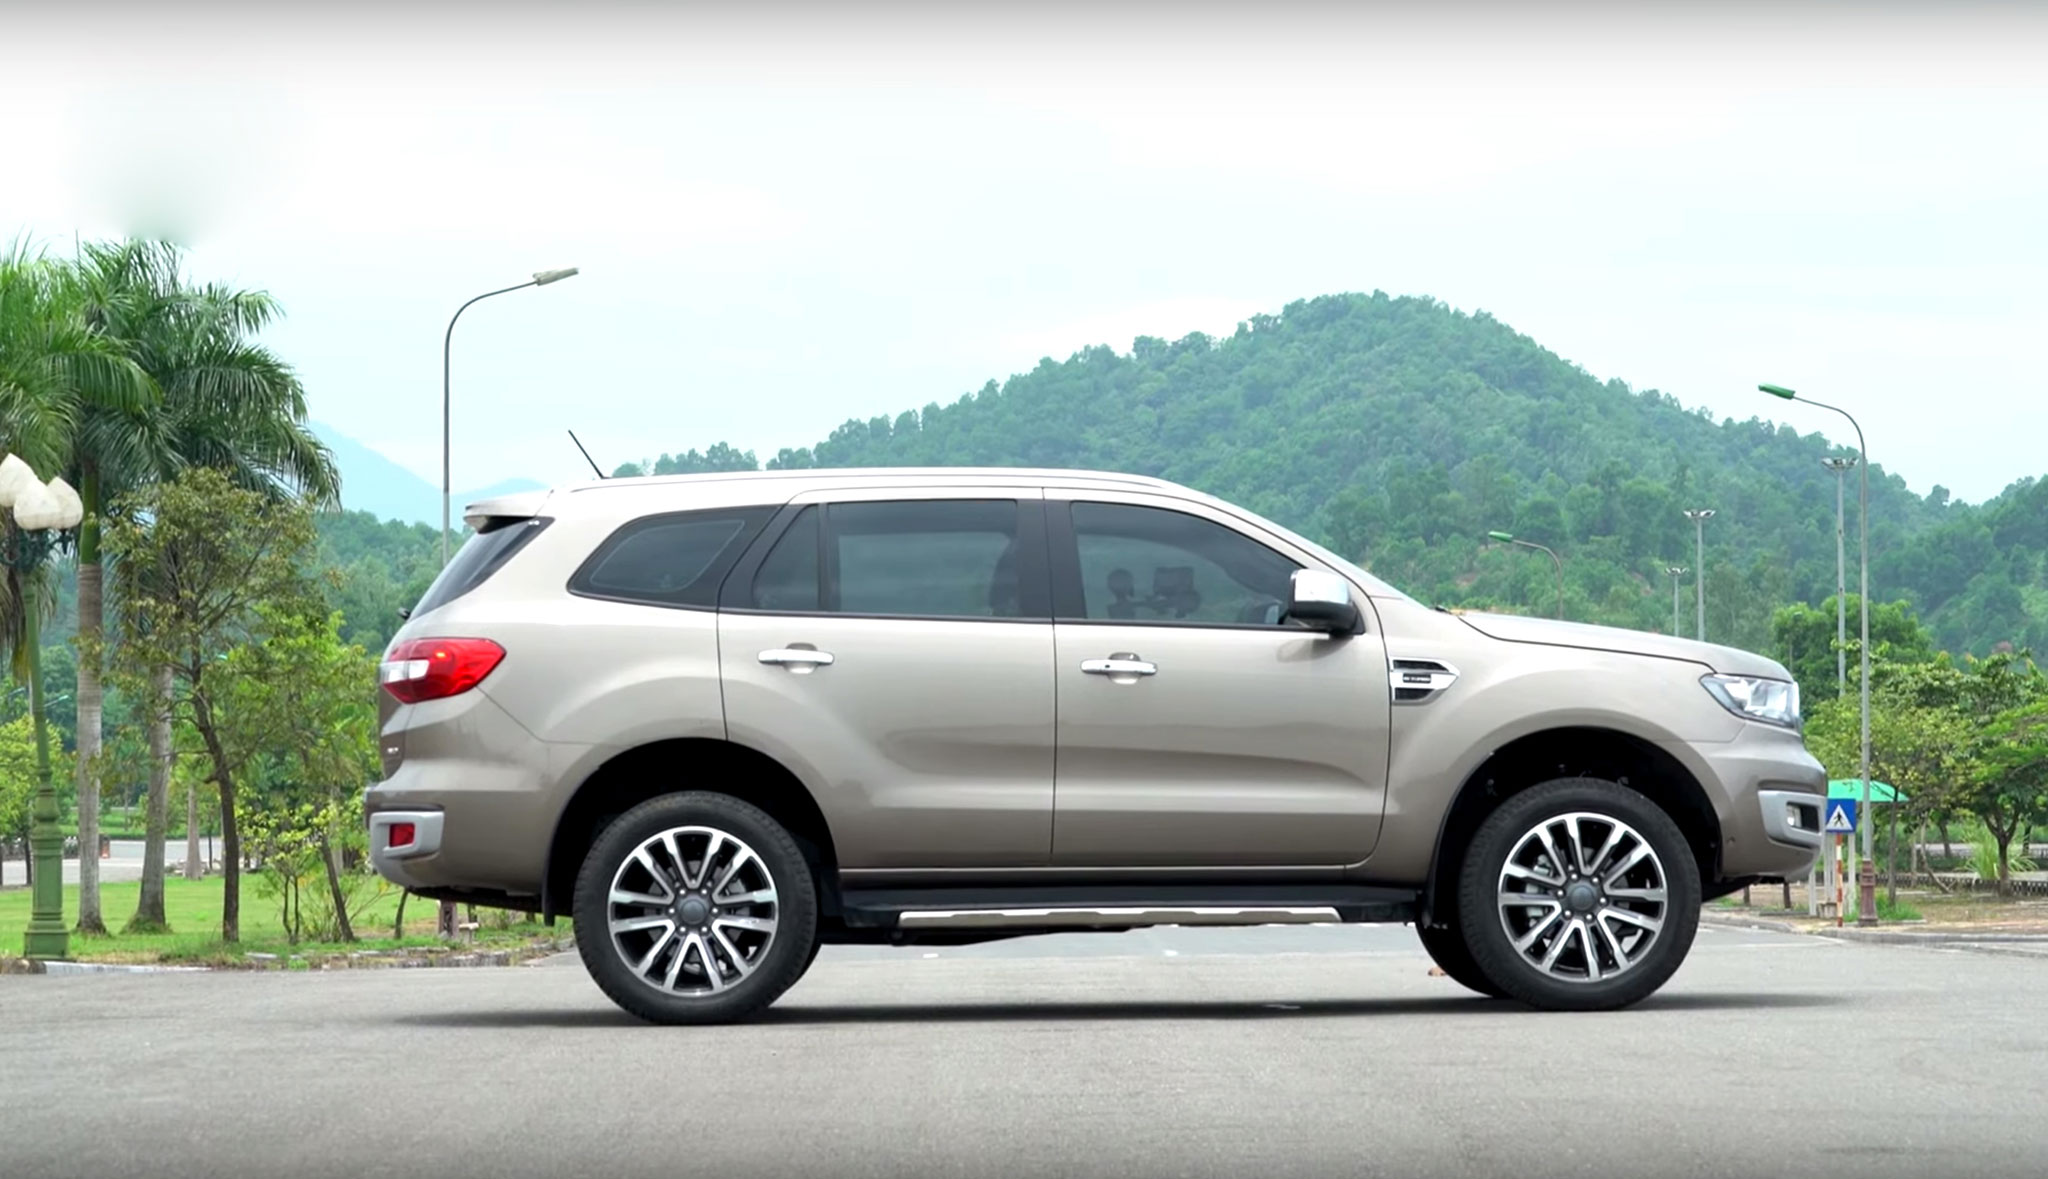 ford-everest-bi-turbo-autodaily-06.jpg